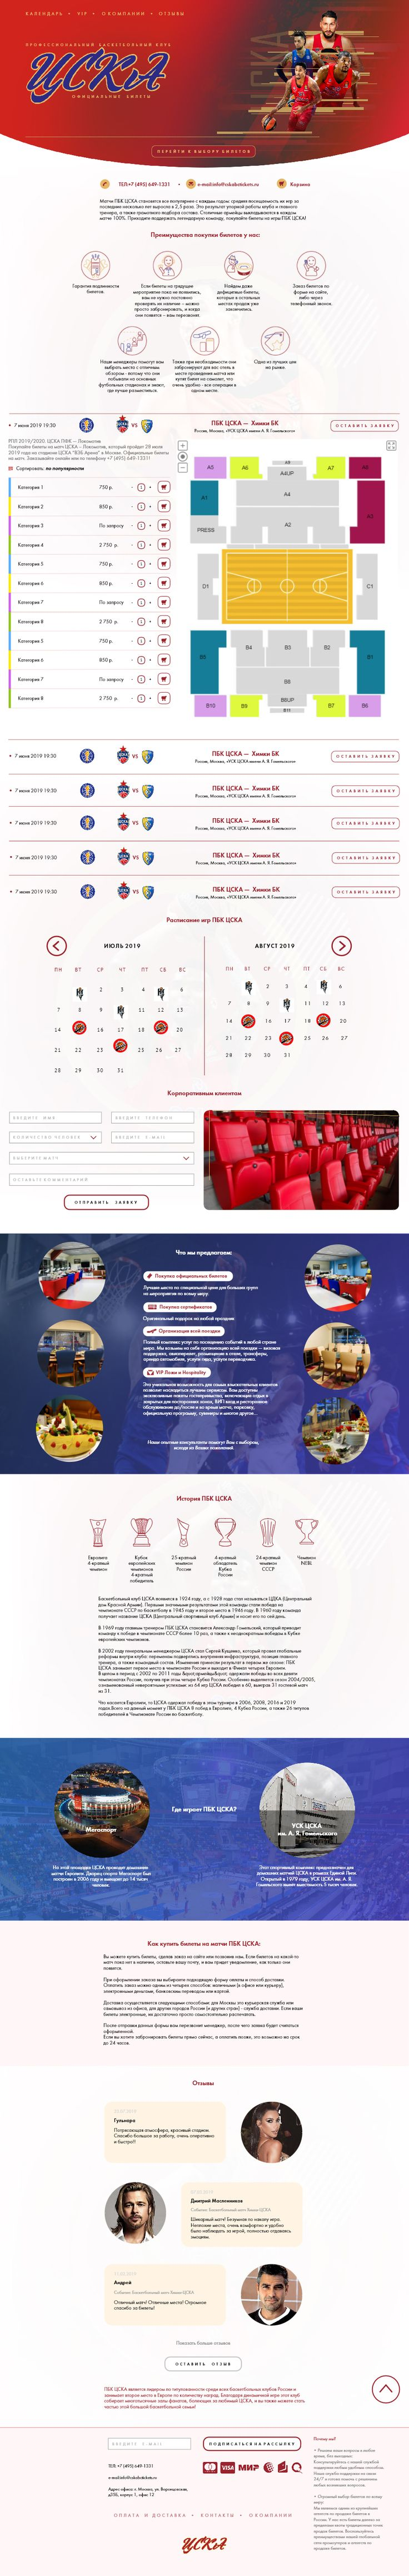 Basketball team CSKA. PSD-layout site. Sample 2